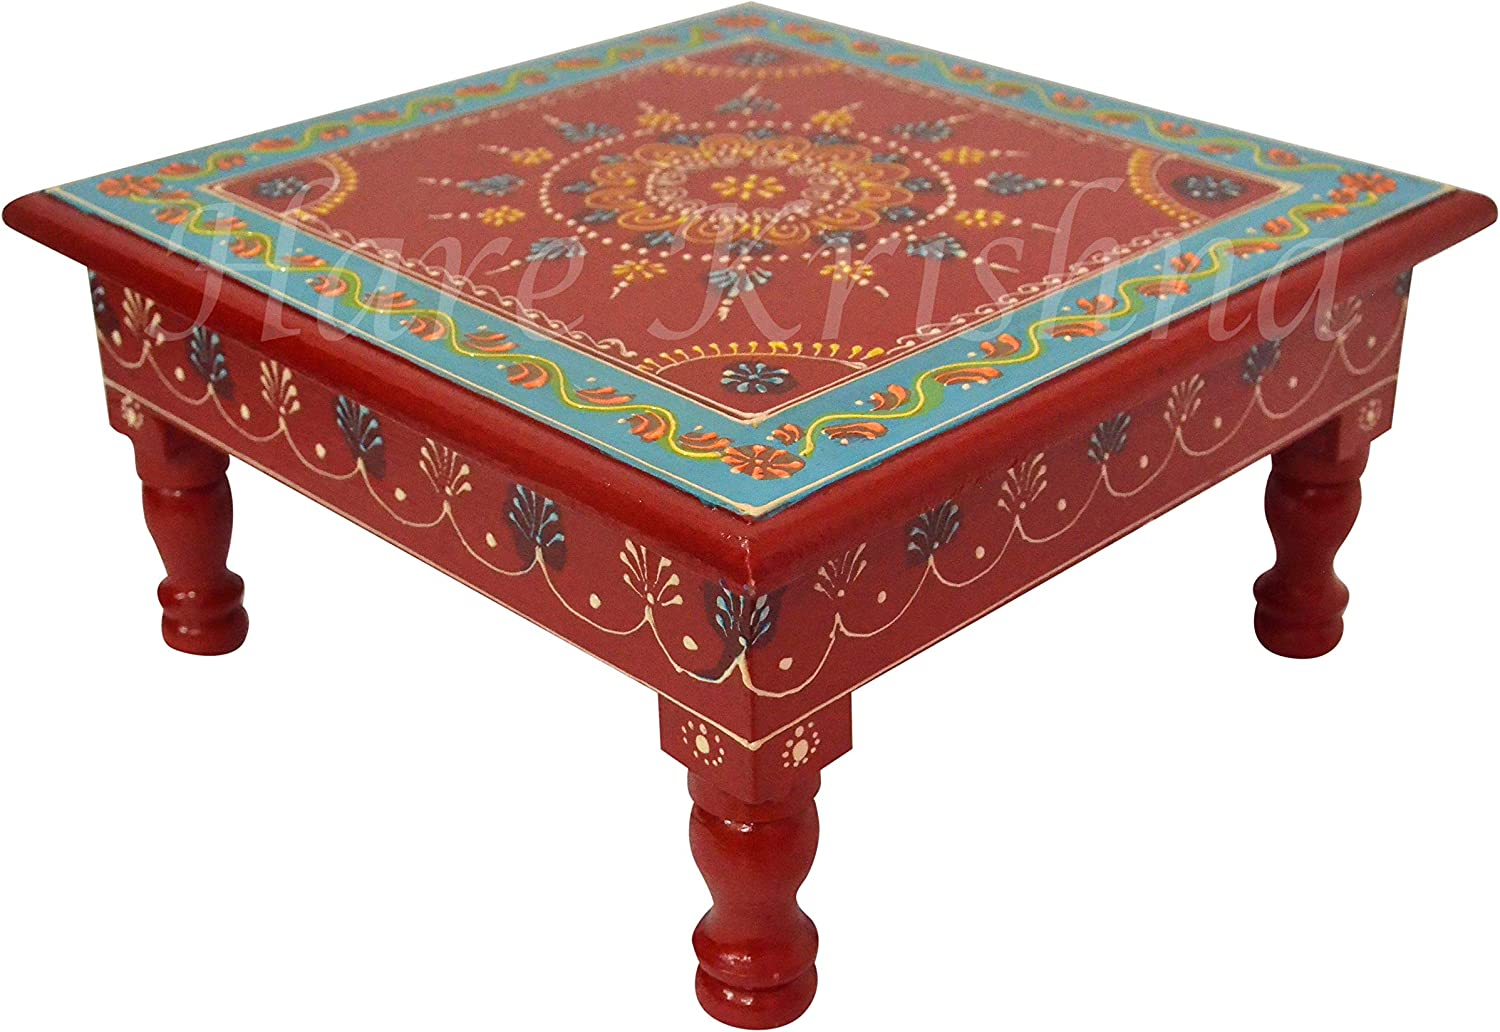 Wooden Small Home Decor Corner Table Pooja Chowki Bajot Side End Low Table 11 x 11 x 5.5 Inches